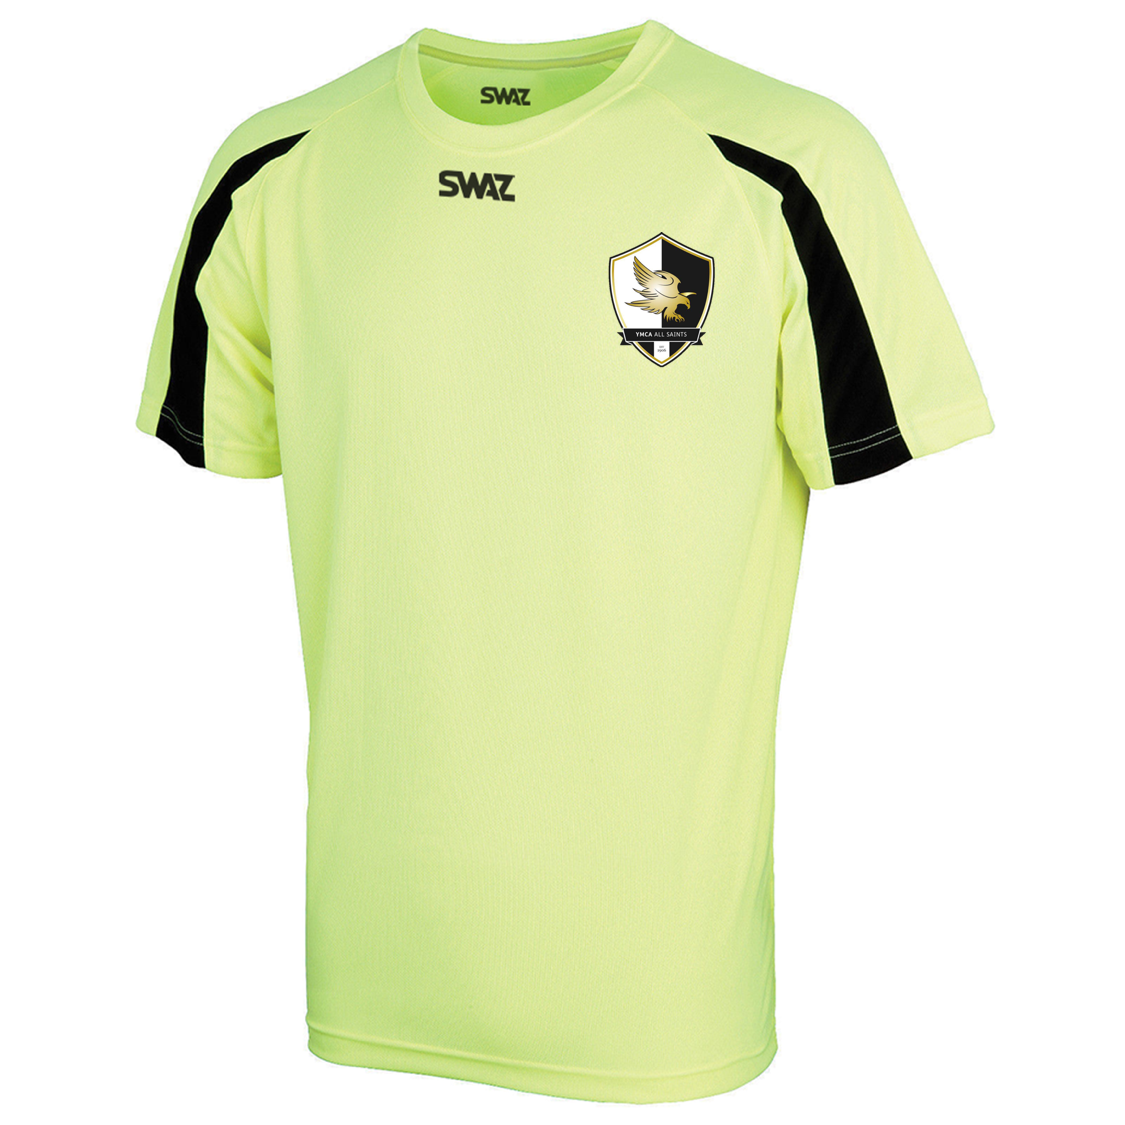 SWAZ YMCA All Saints Adult Premier Training T-Shirt – Electric Yellow/Black